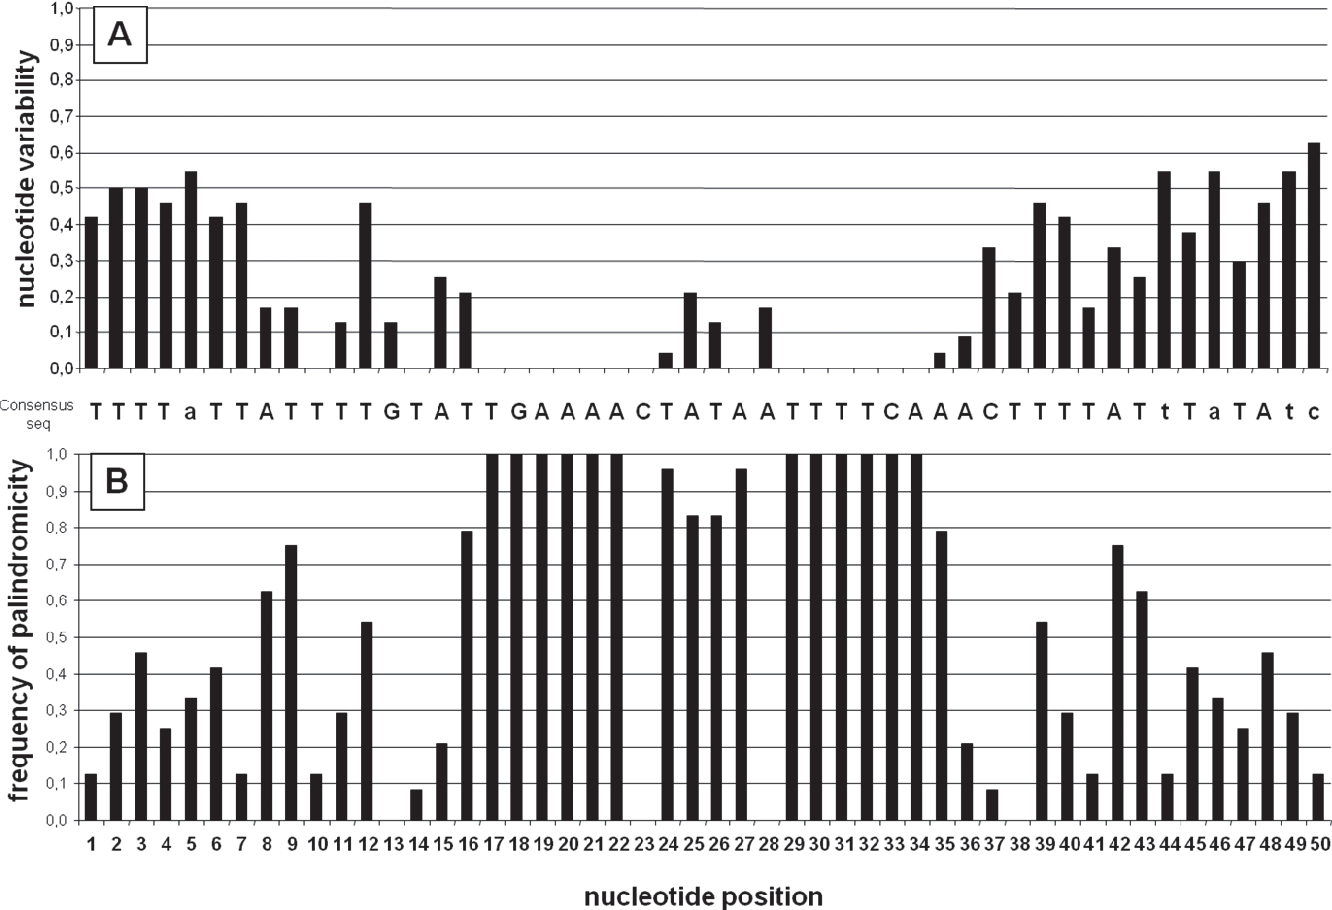 Figure 3. difH sequences. (A) difH consensus sequence and nucleotide variability for difH sequences from 24 epsilon- proteobacterial species (Table 2). If a given nucleotide is present in more than 50% of species it is written in upper case; if not, the most frequent nucleotide is in lower case. The nucleotide variability at each position was defined as 1–f, where f is the frequency of the most frequent nucleotide. (B) Palindromicity was analysed by comparing the 50-nt difH sequence with its inverted complementary counterpart in the 24 epsilon-proteobacterial species (Table 2). When a nucleotide was found both in difH and in the reverse complementary sequence, a value of 1 was given to the position. Next, the values for the 24 difH sequences for each position were added together to give the n value. The palindromicity frequency (fpal) was then estimated as: fpal= n/ 24, with 24 being the number of difH sequences analysed. A fpal value of 1 given to a nucleotide position means that the nucleotide is always part of a palindrome. doi:10.1371/journal.pone.0033310.g003